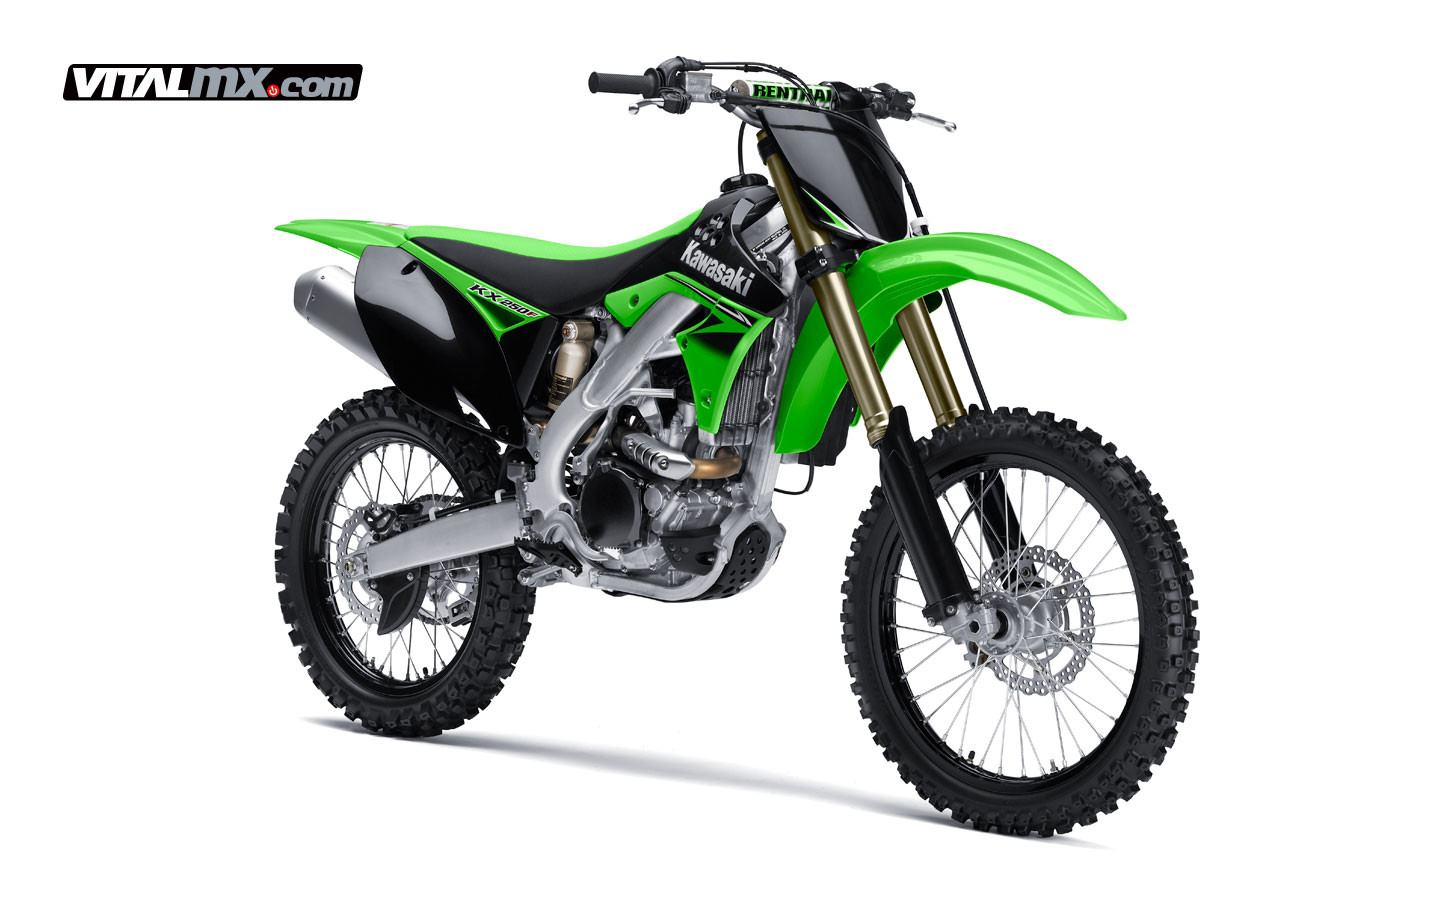 2010 Kawasaki KX250F - 2010 Kawasaki KX250F Wallpapers - Motocross Pictures - Vital MX